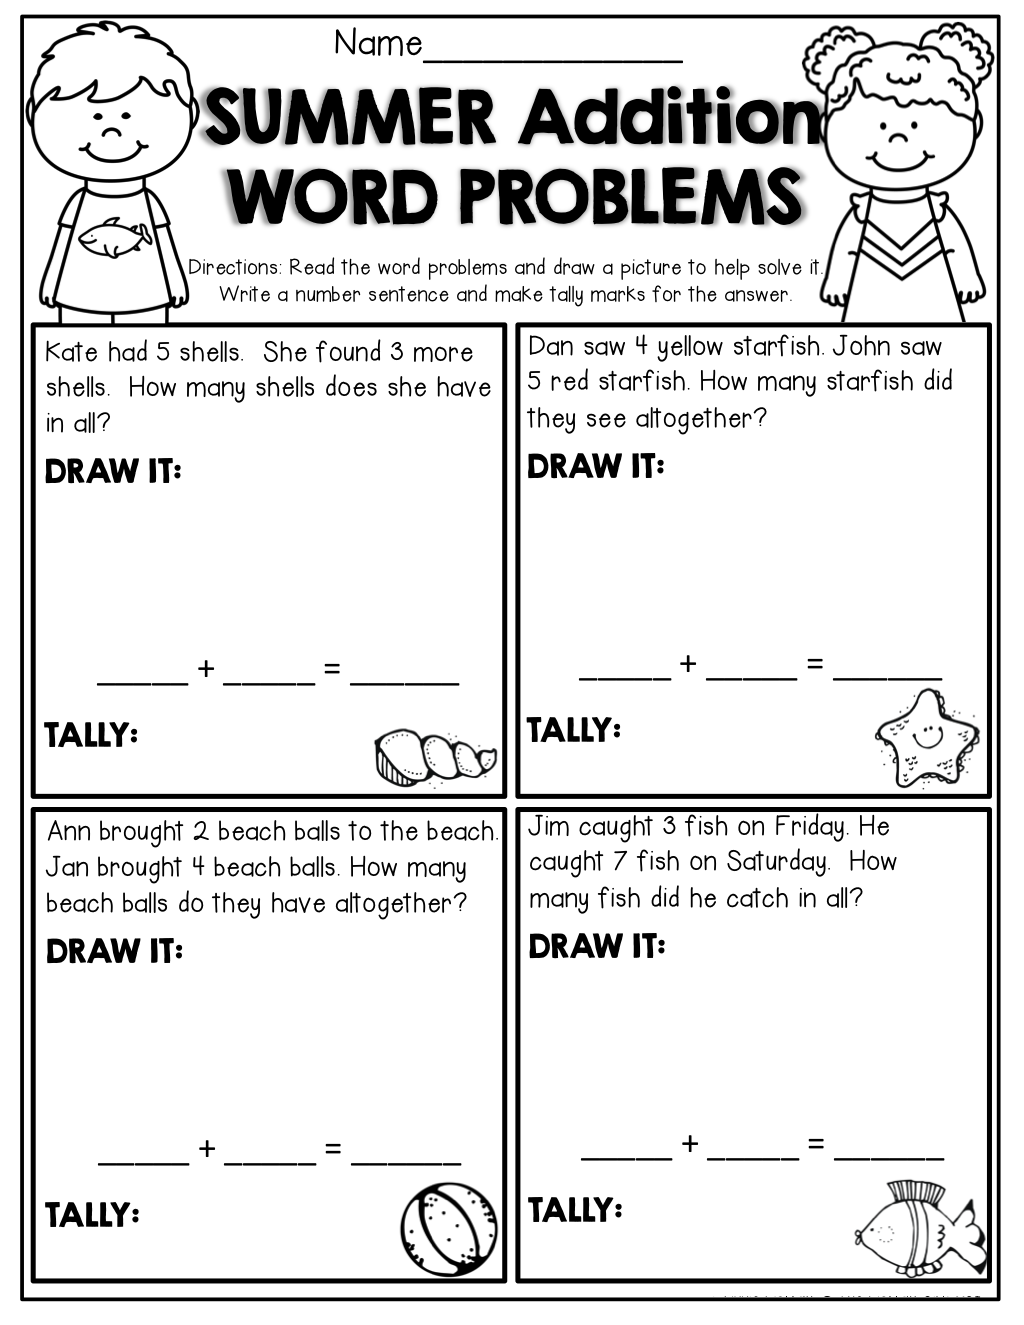 Basic Math Problems Worksheets Word Problems